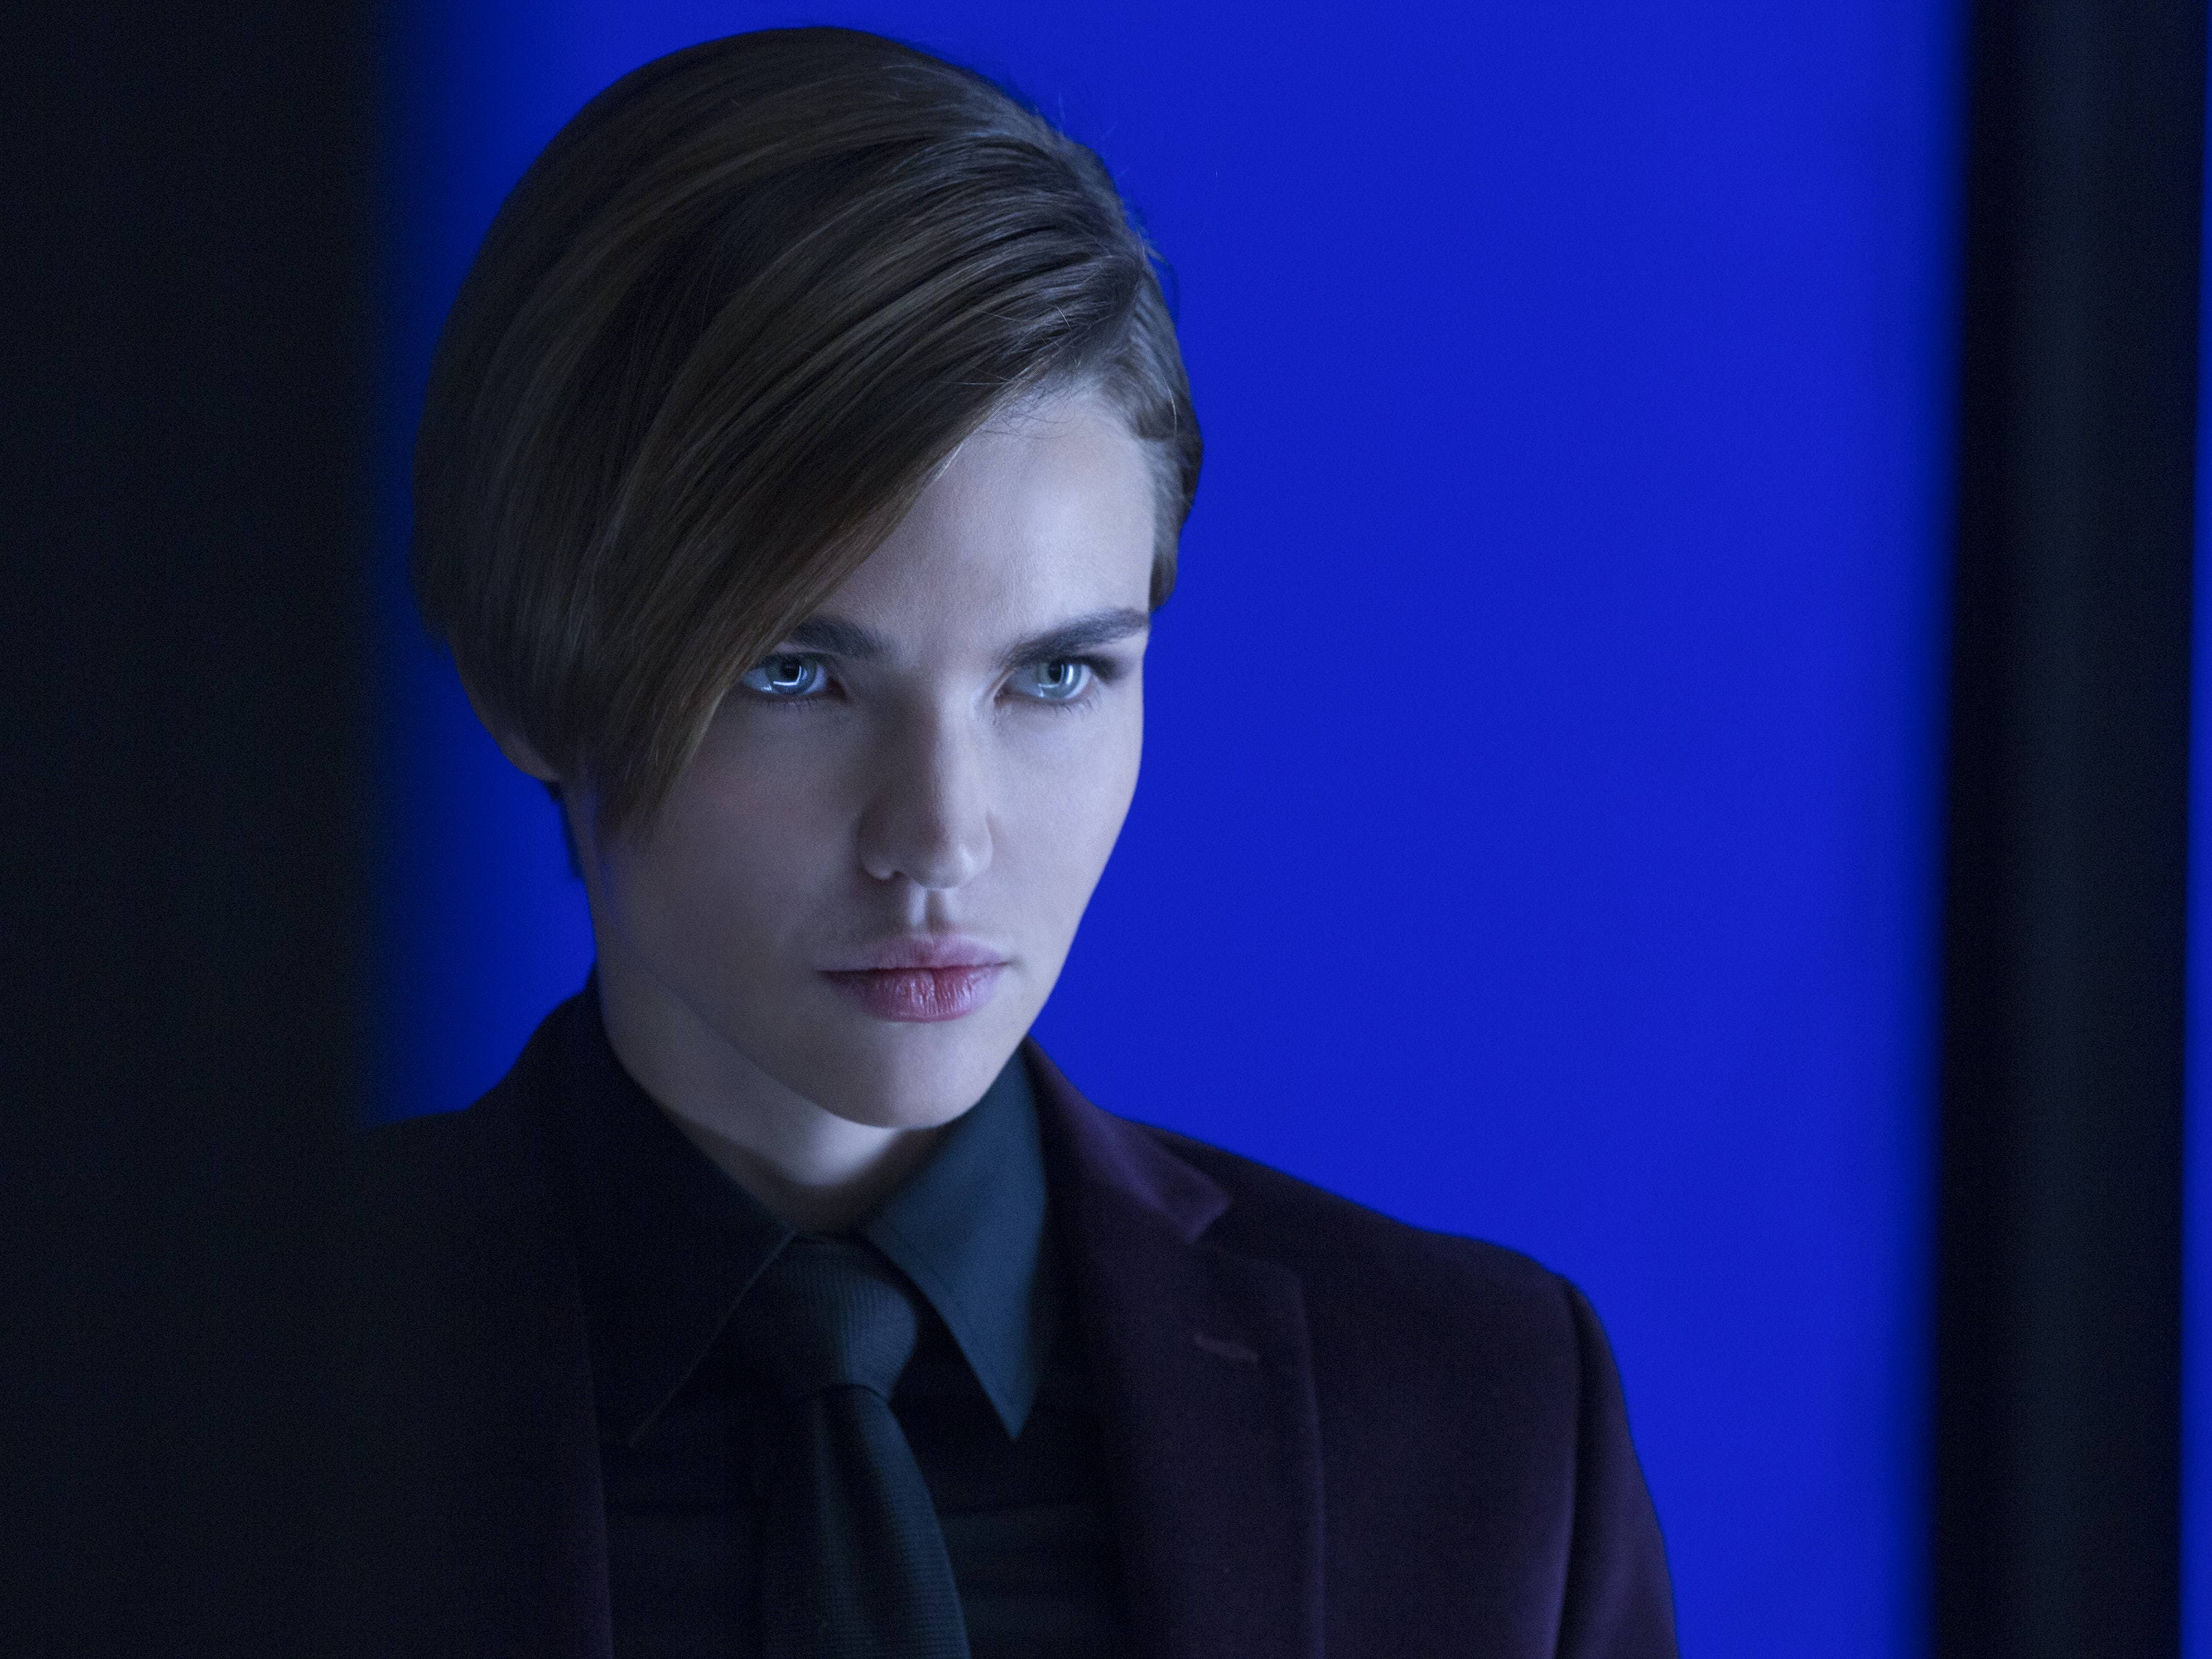 Ruby Rose Proves She's a Legit Action Star In 'John Wick: Chapter 2'